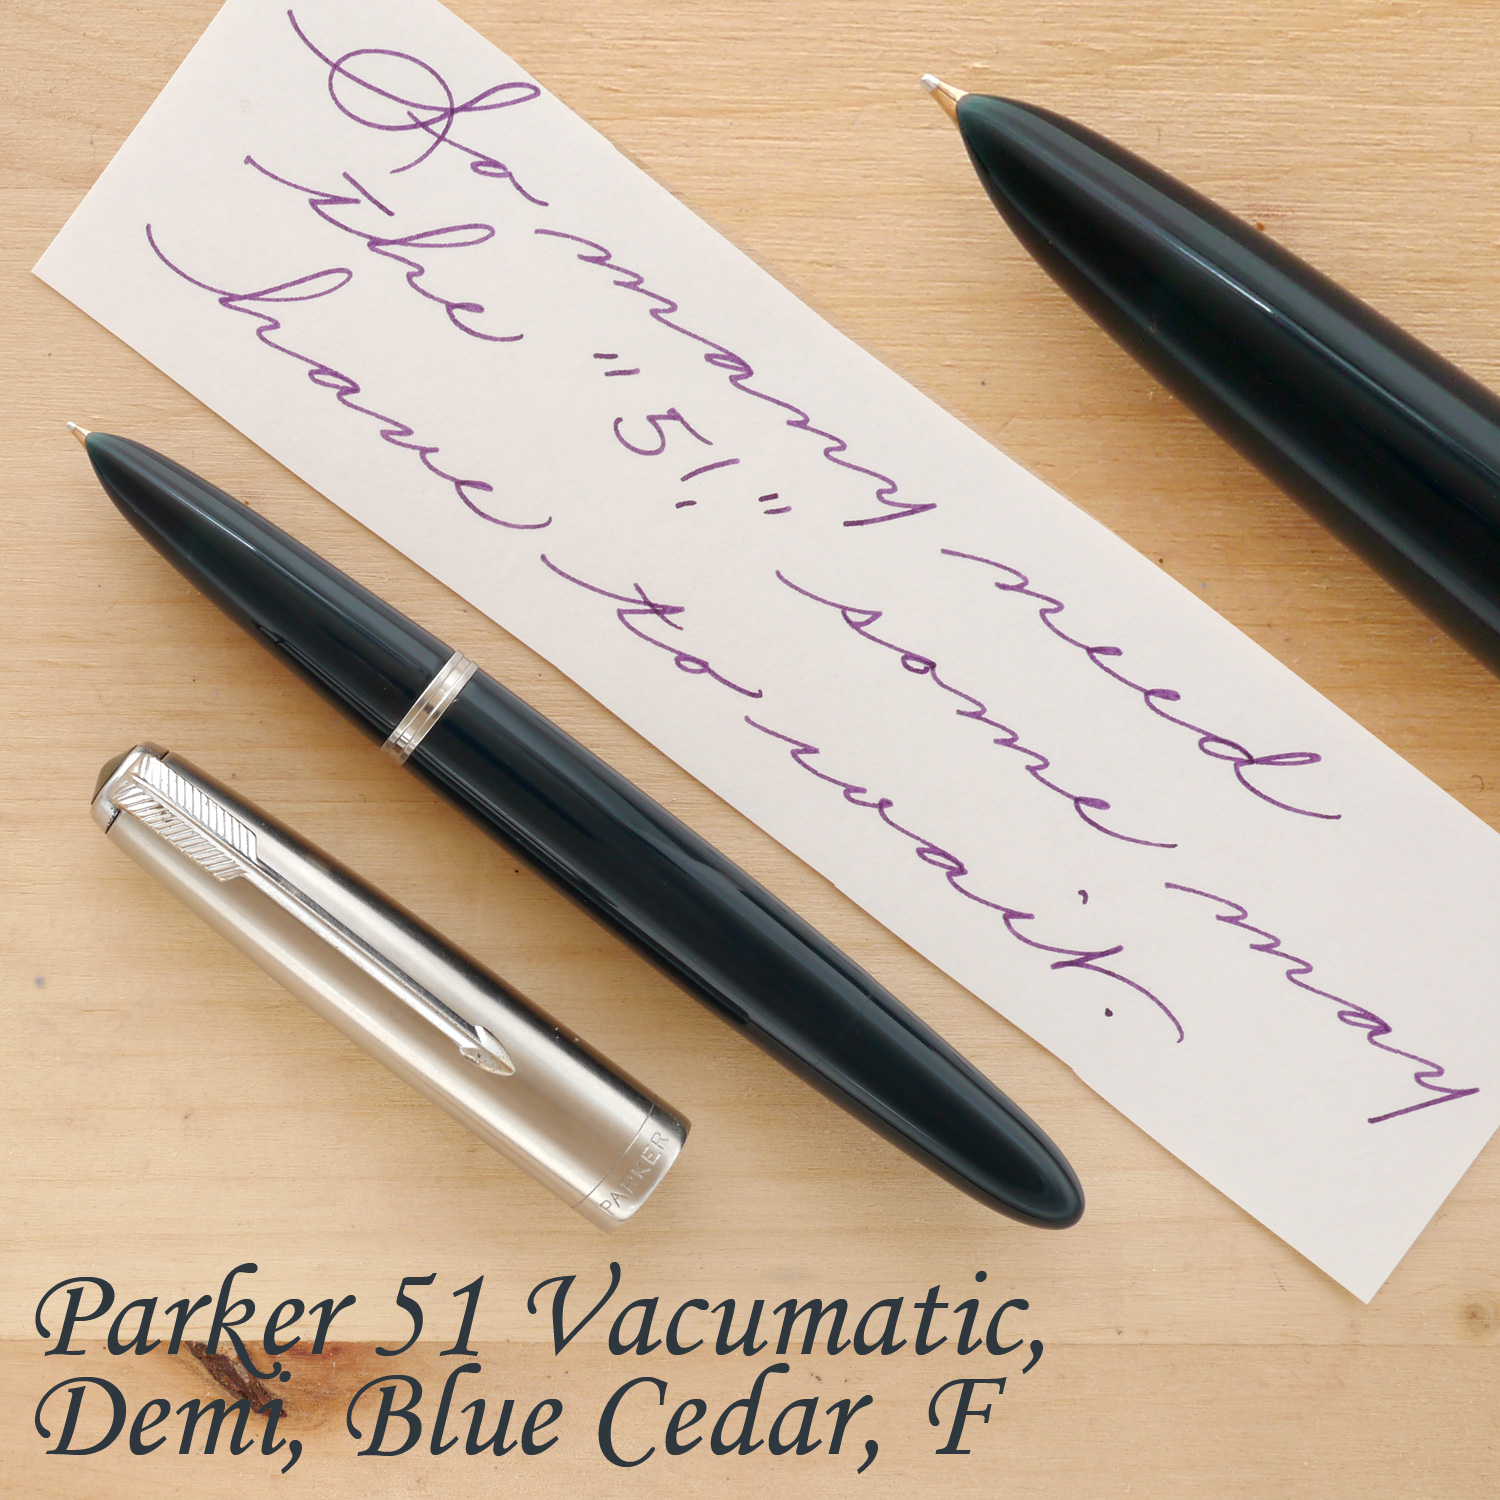 Parker 51 Vacumatic Demi Fountain Pen, Blue Cedar, F, unposted